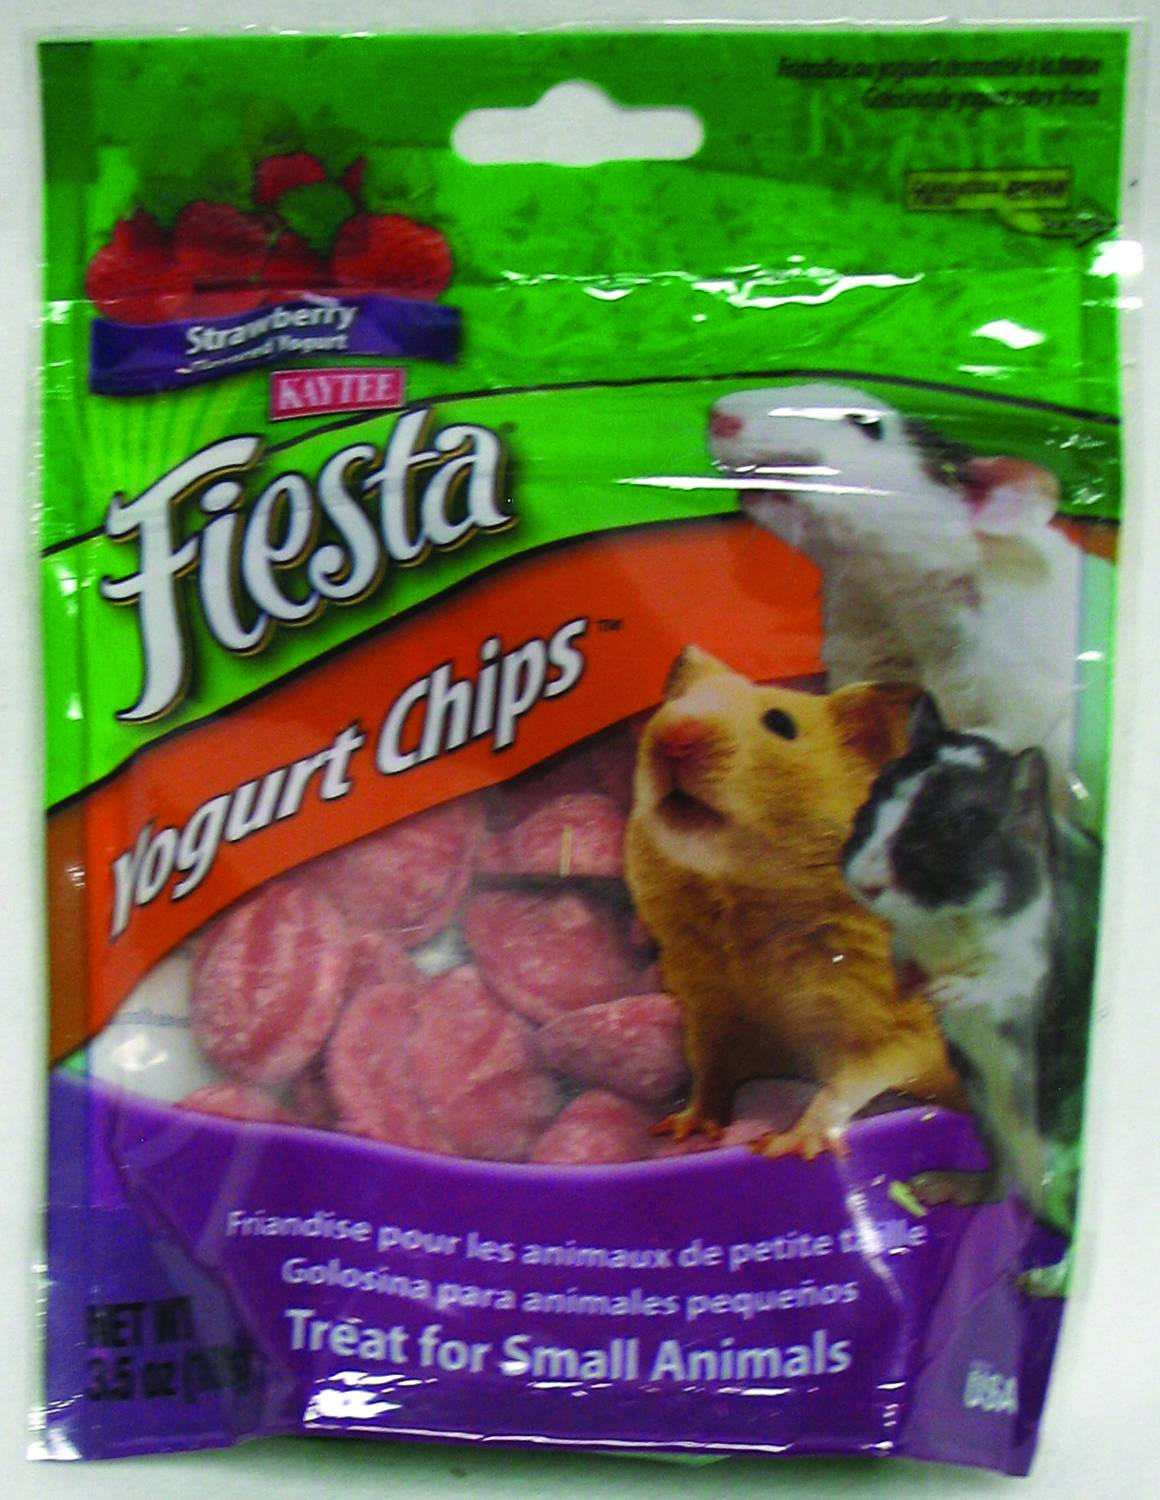 Kaytee Fiesta Yogurt Chips Small Animal 3.5 Oz. Strawberry 71859942155 |  eBay